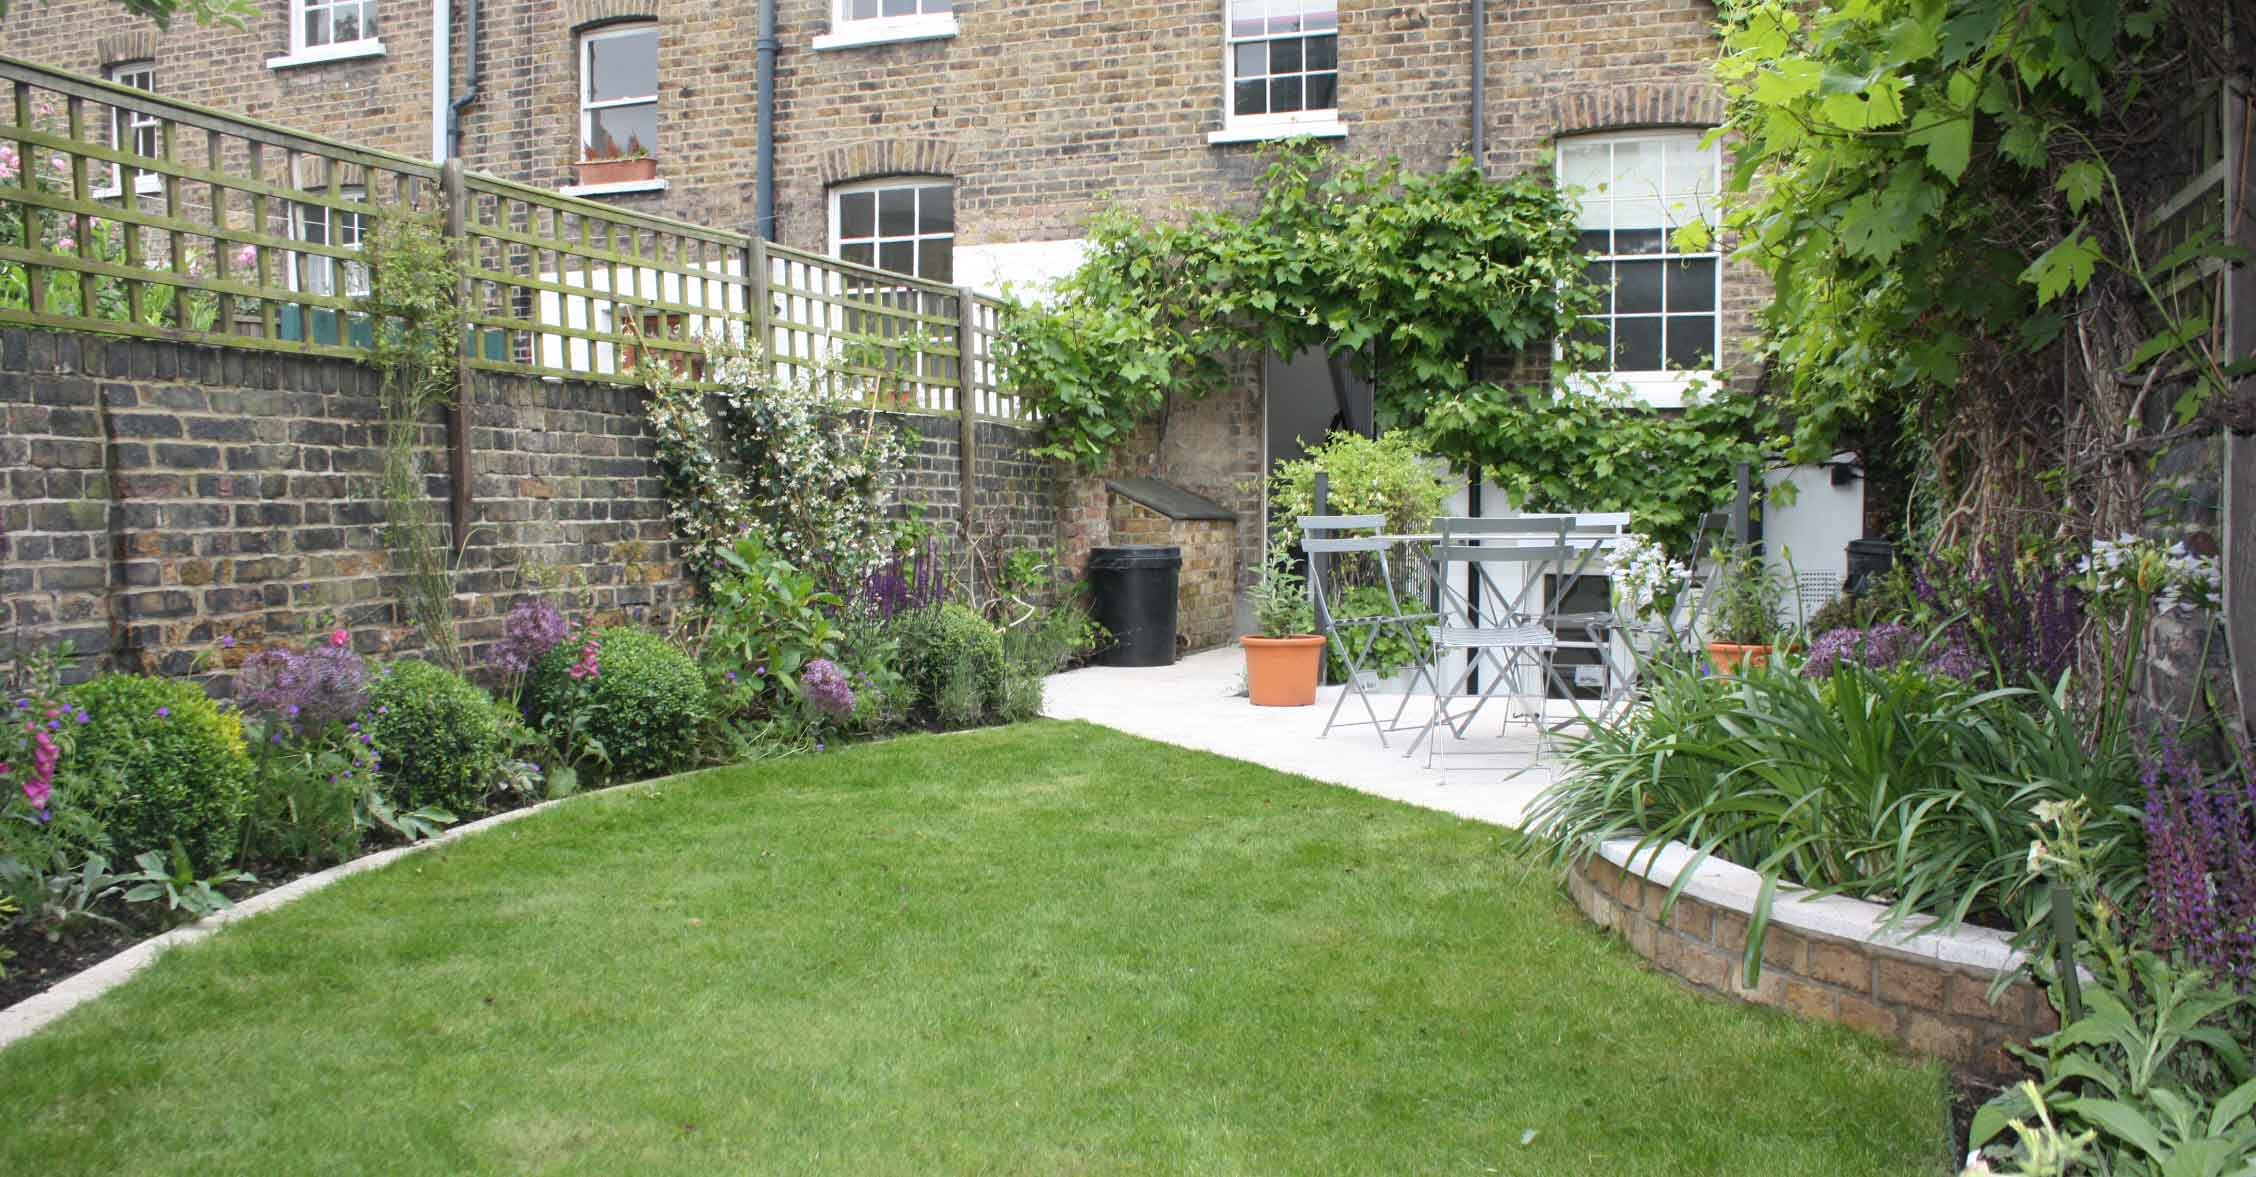 Long thin greenwich cottage garden garden design london for Landscape design london